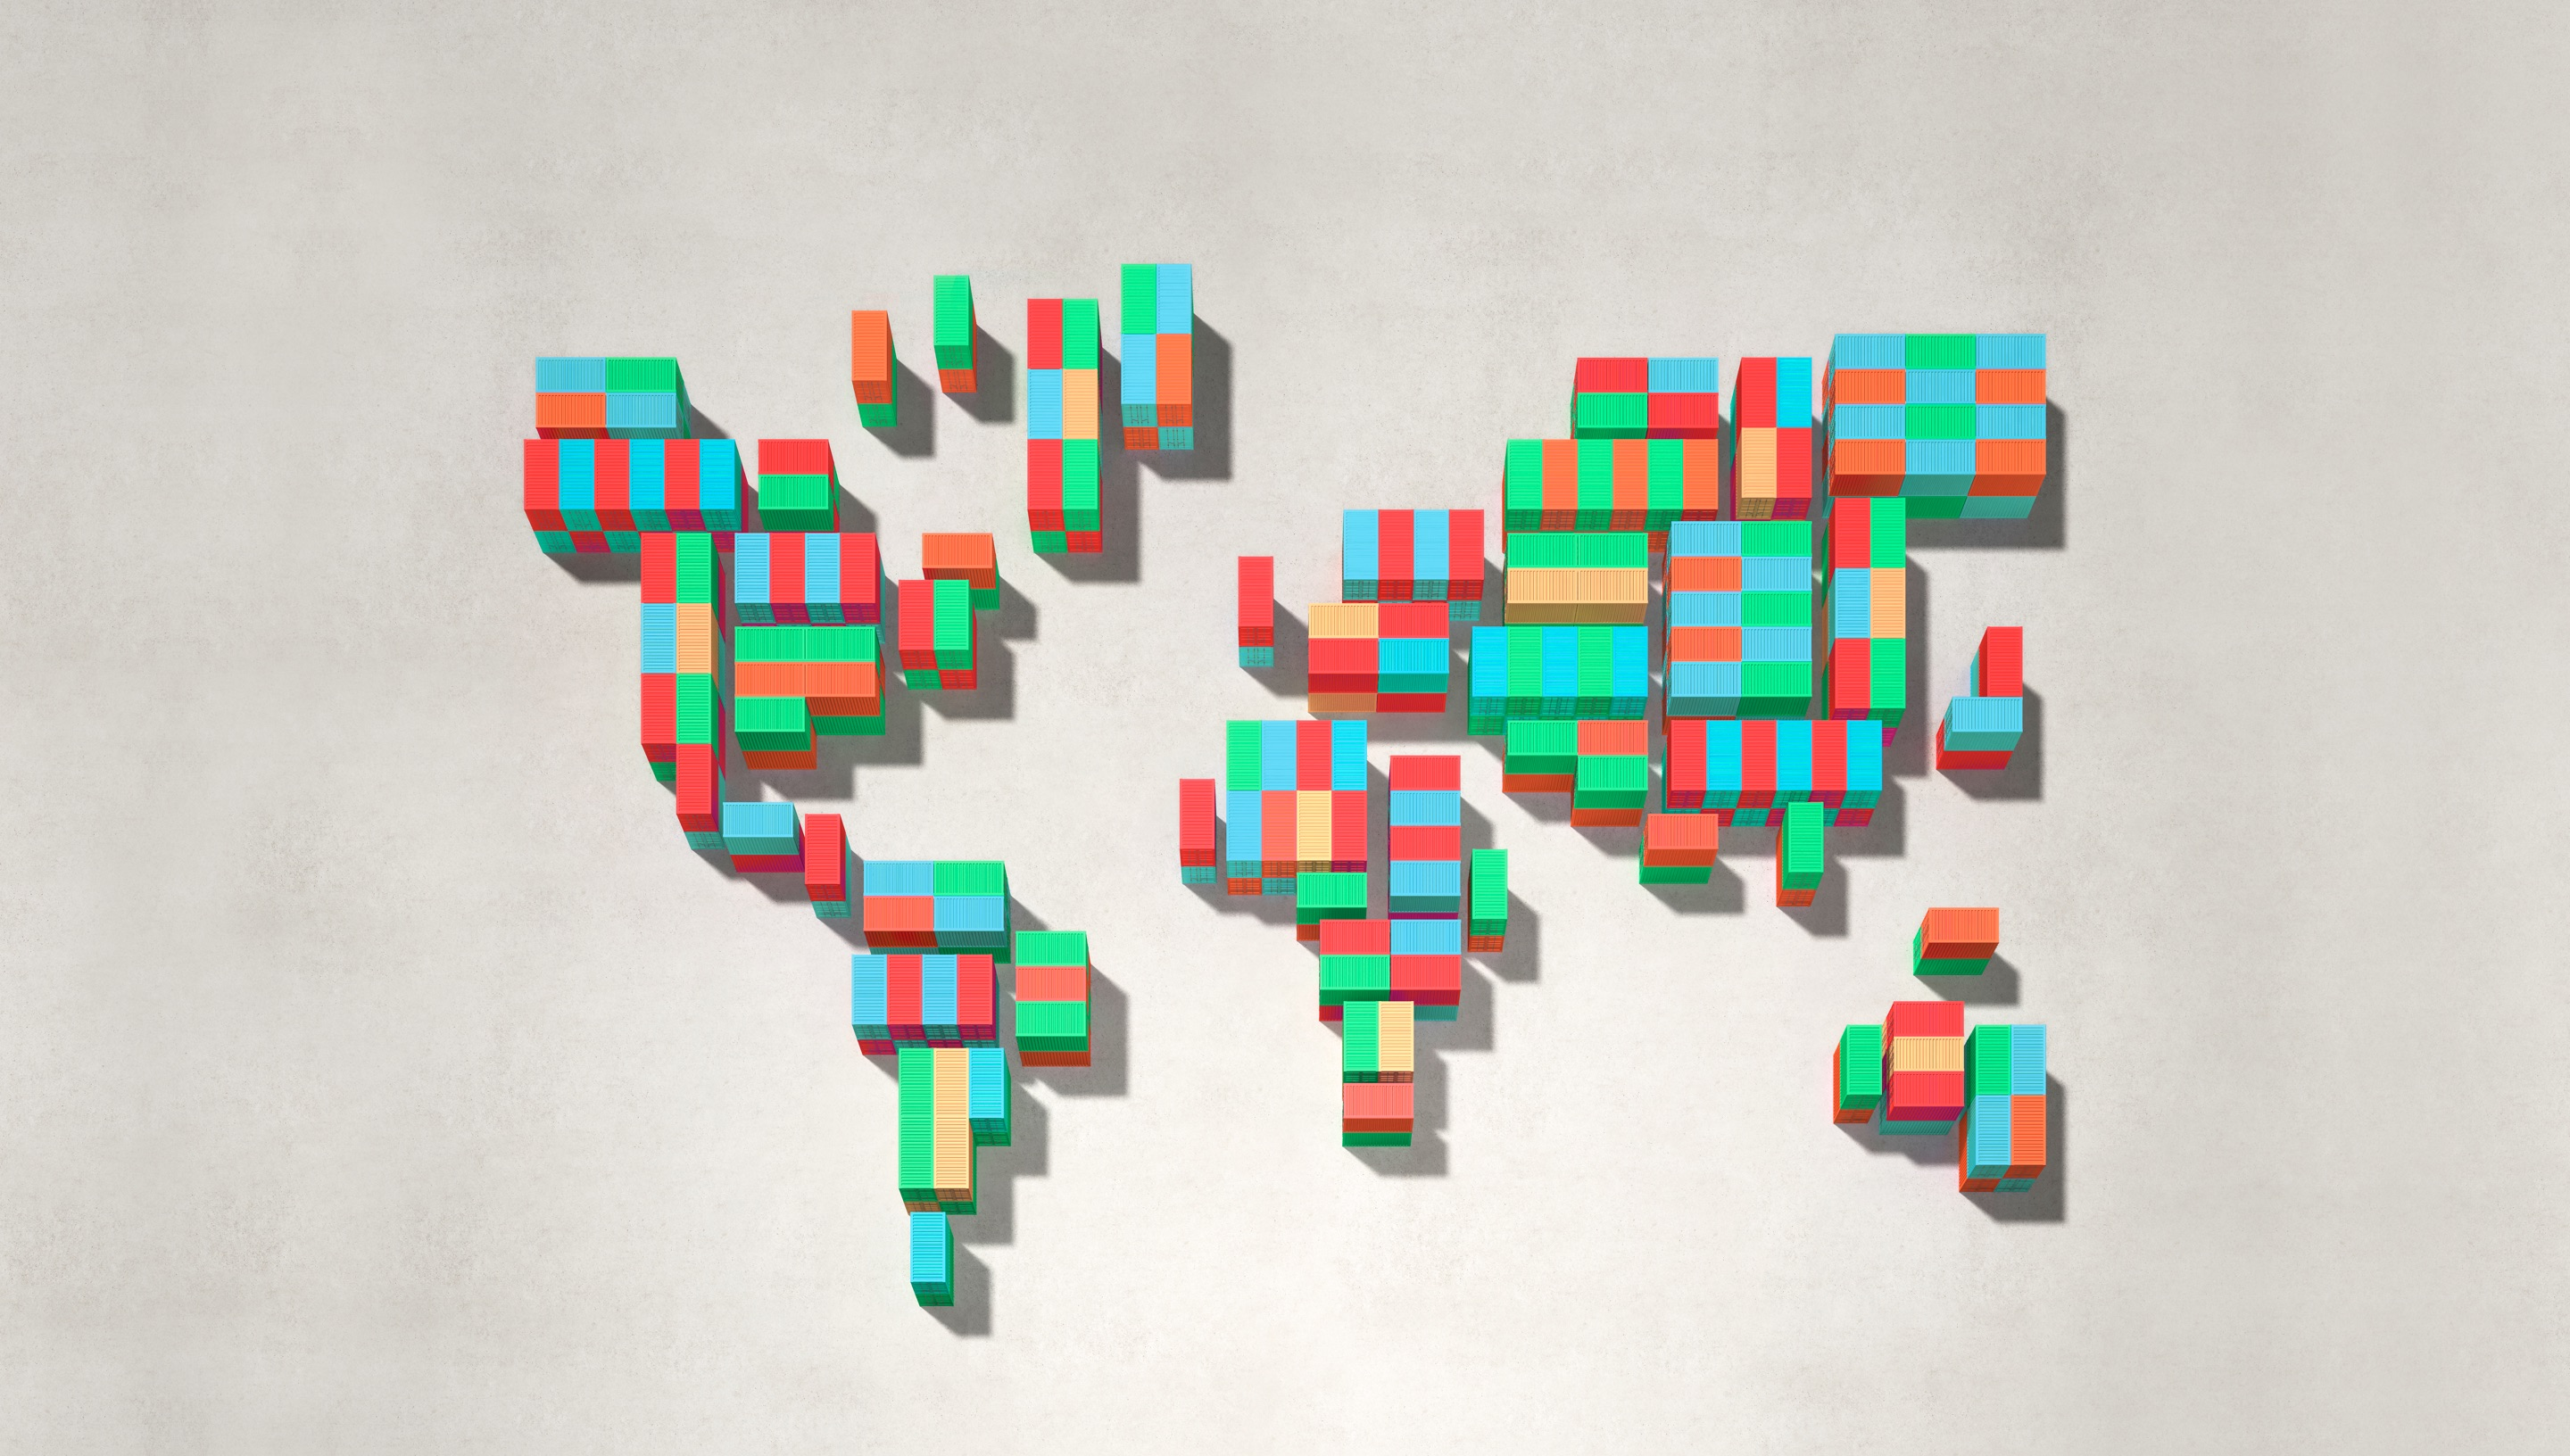 Shipping containers in the shape of a global map